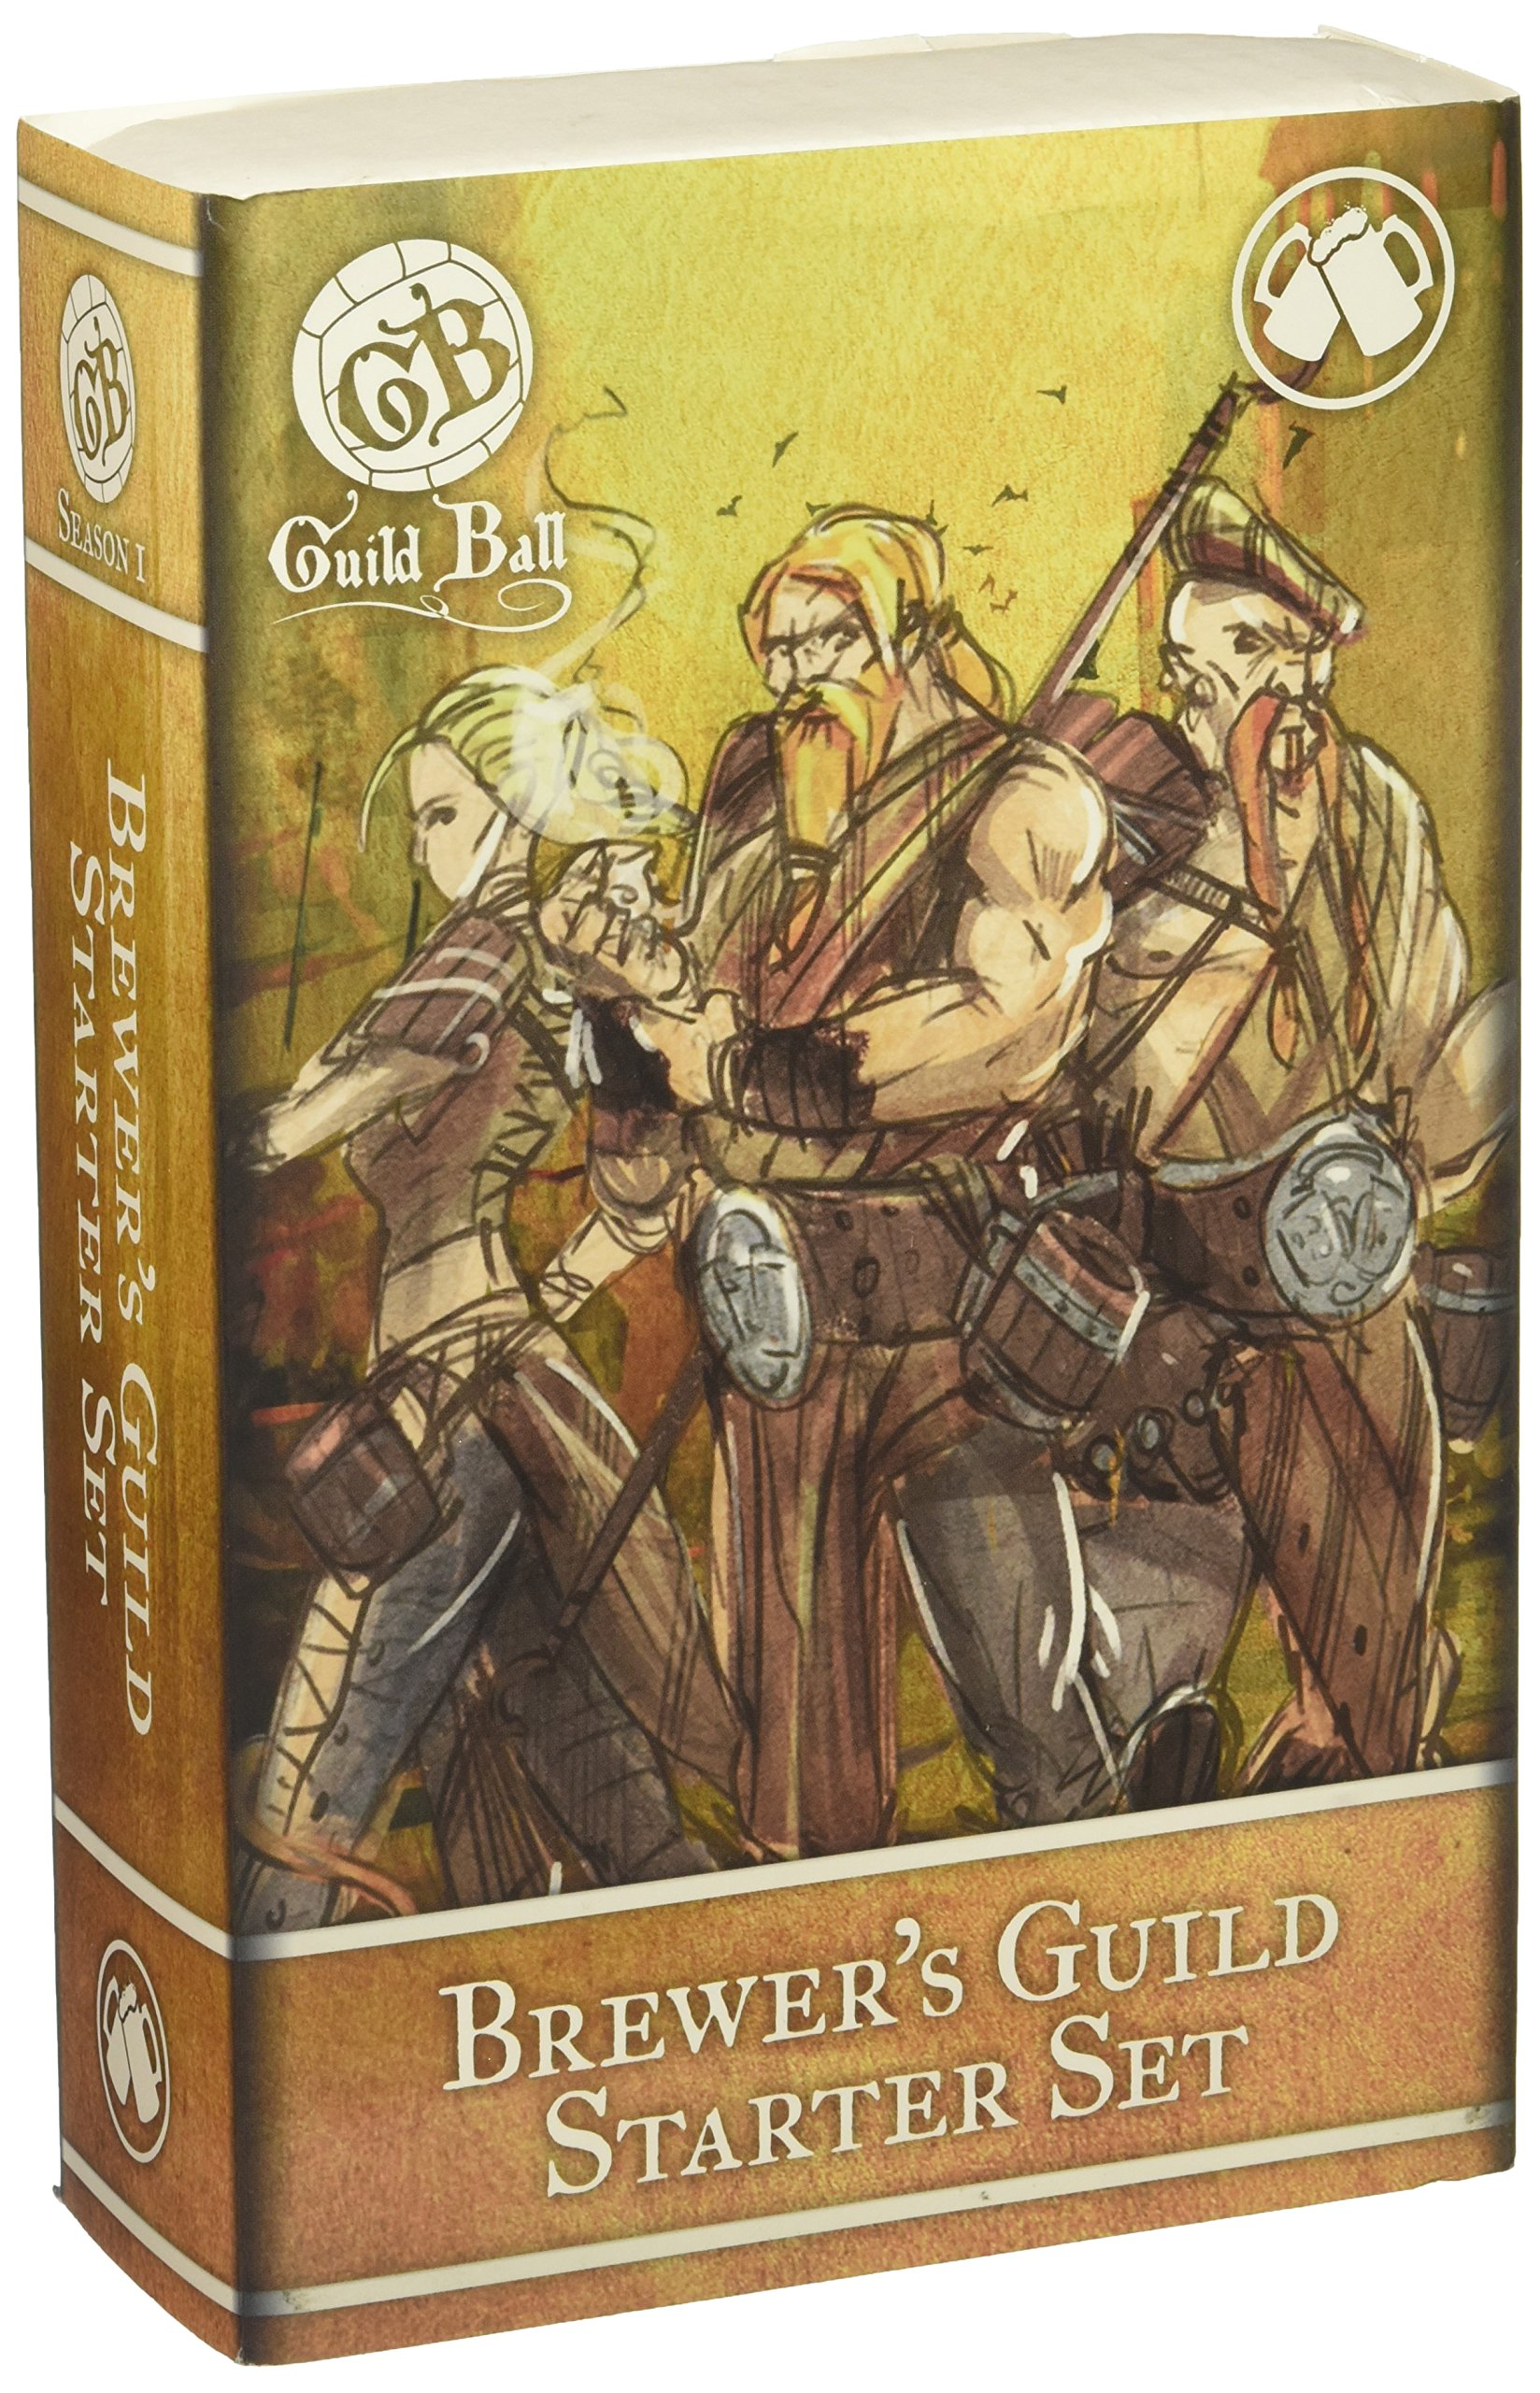 Steamforged Games Guild Ball Brewer Starter Set